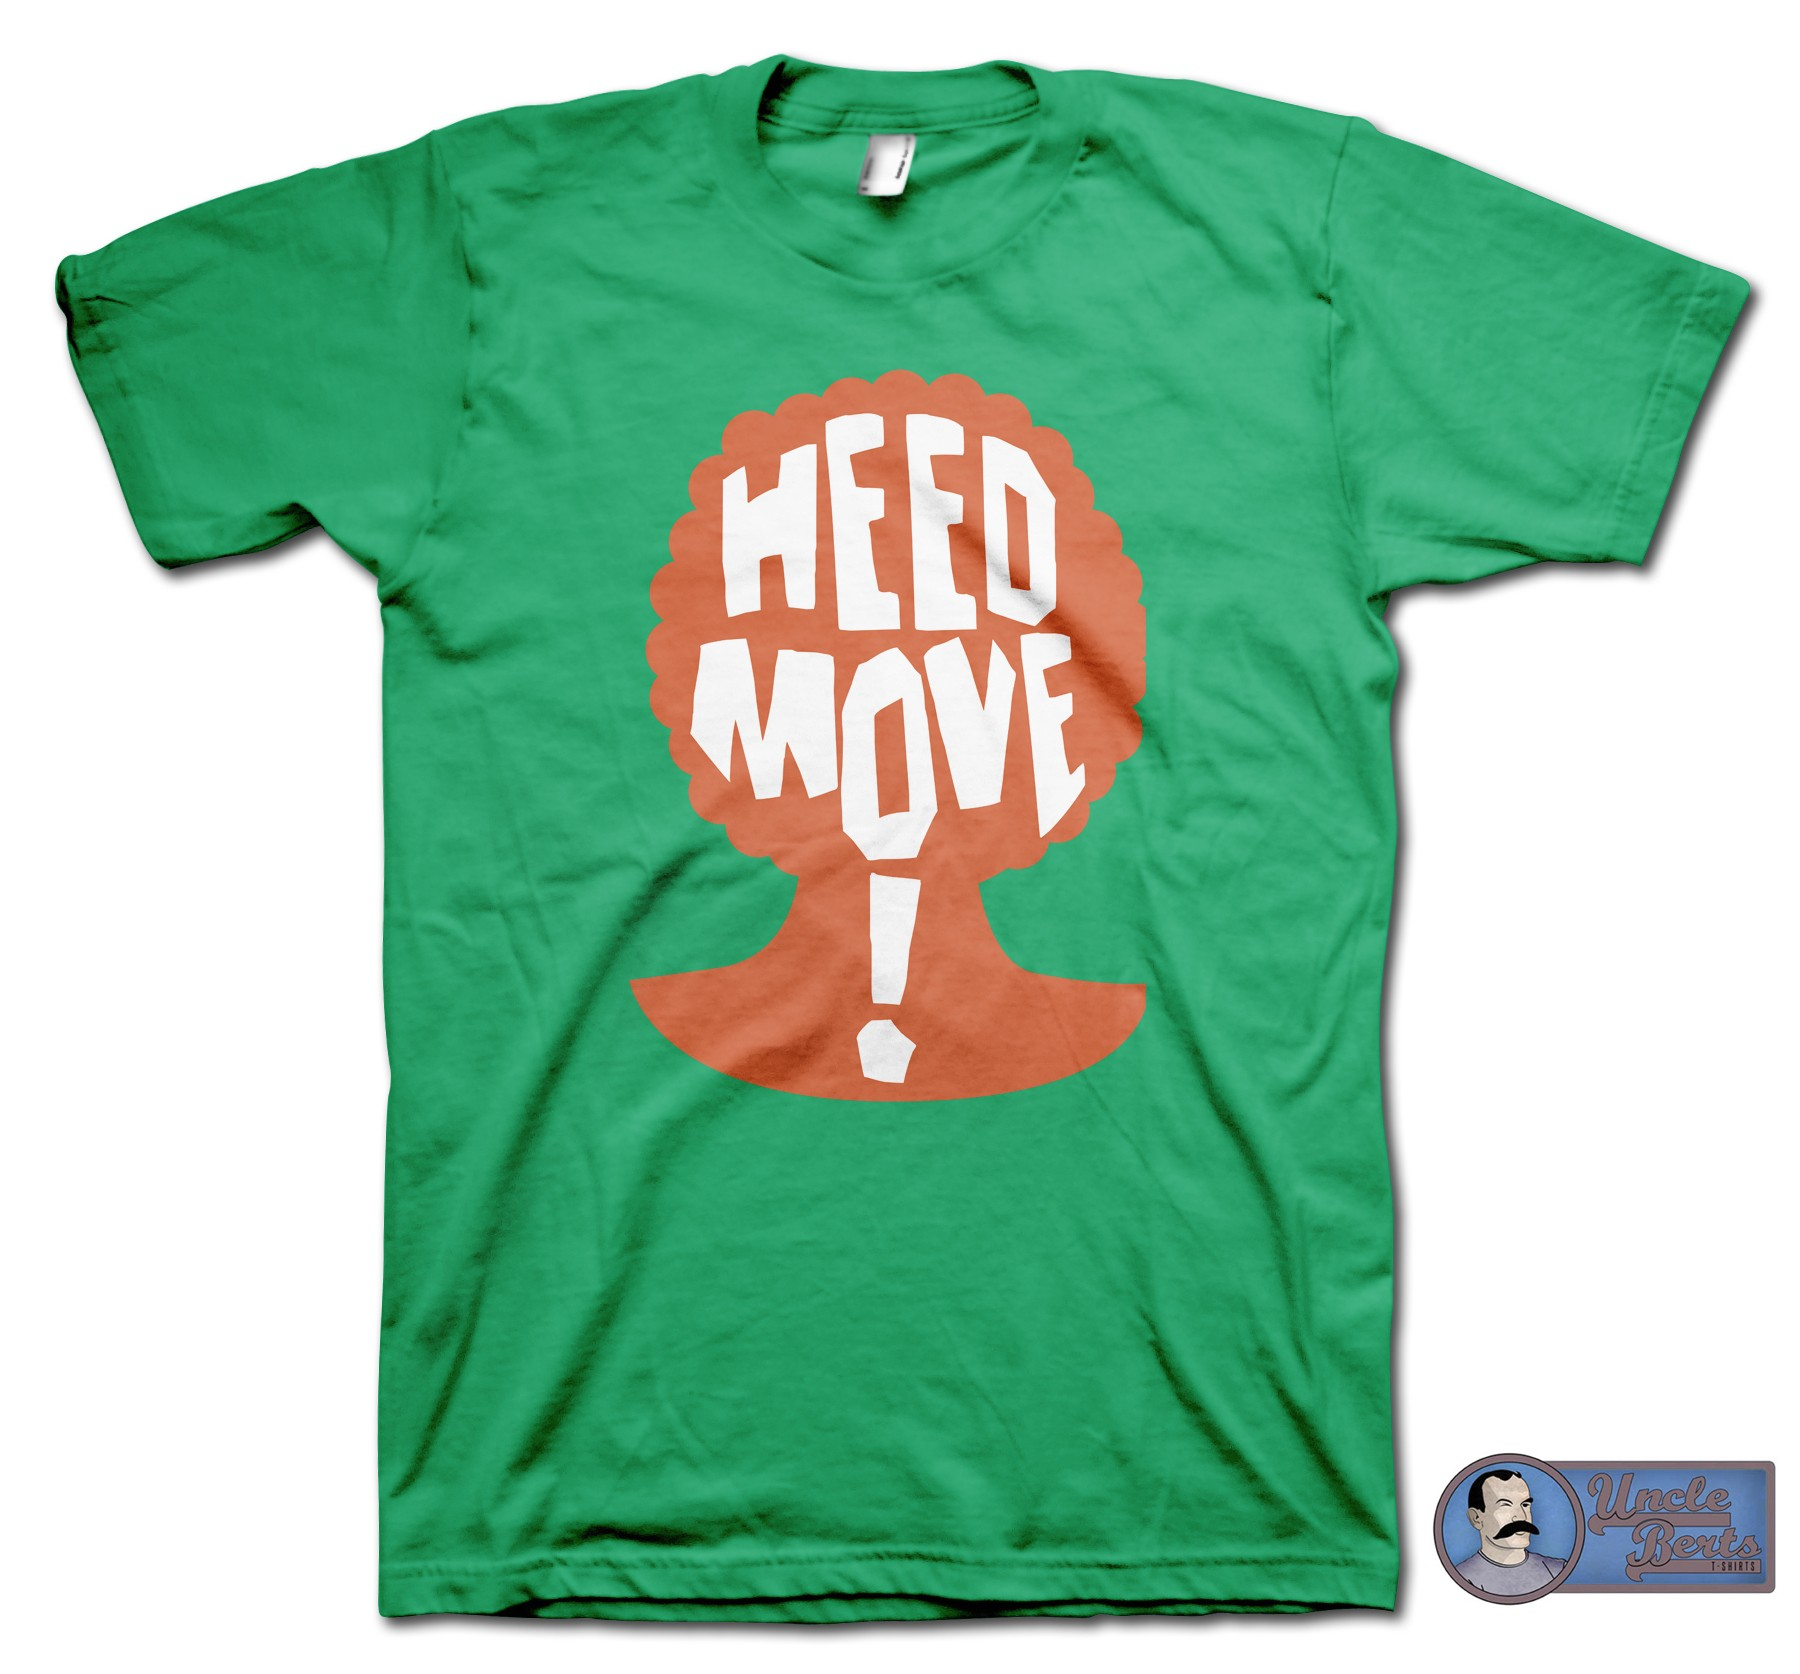 So I Married An Axe Murderer (1993) Inspired Heed Move! T-Shirt